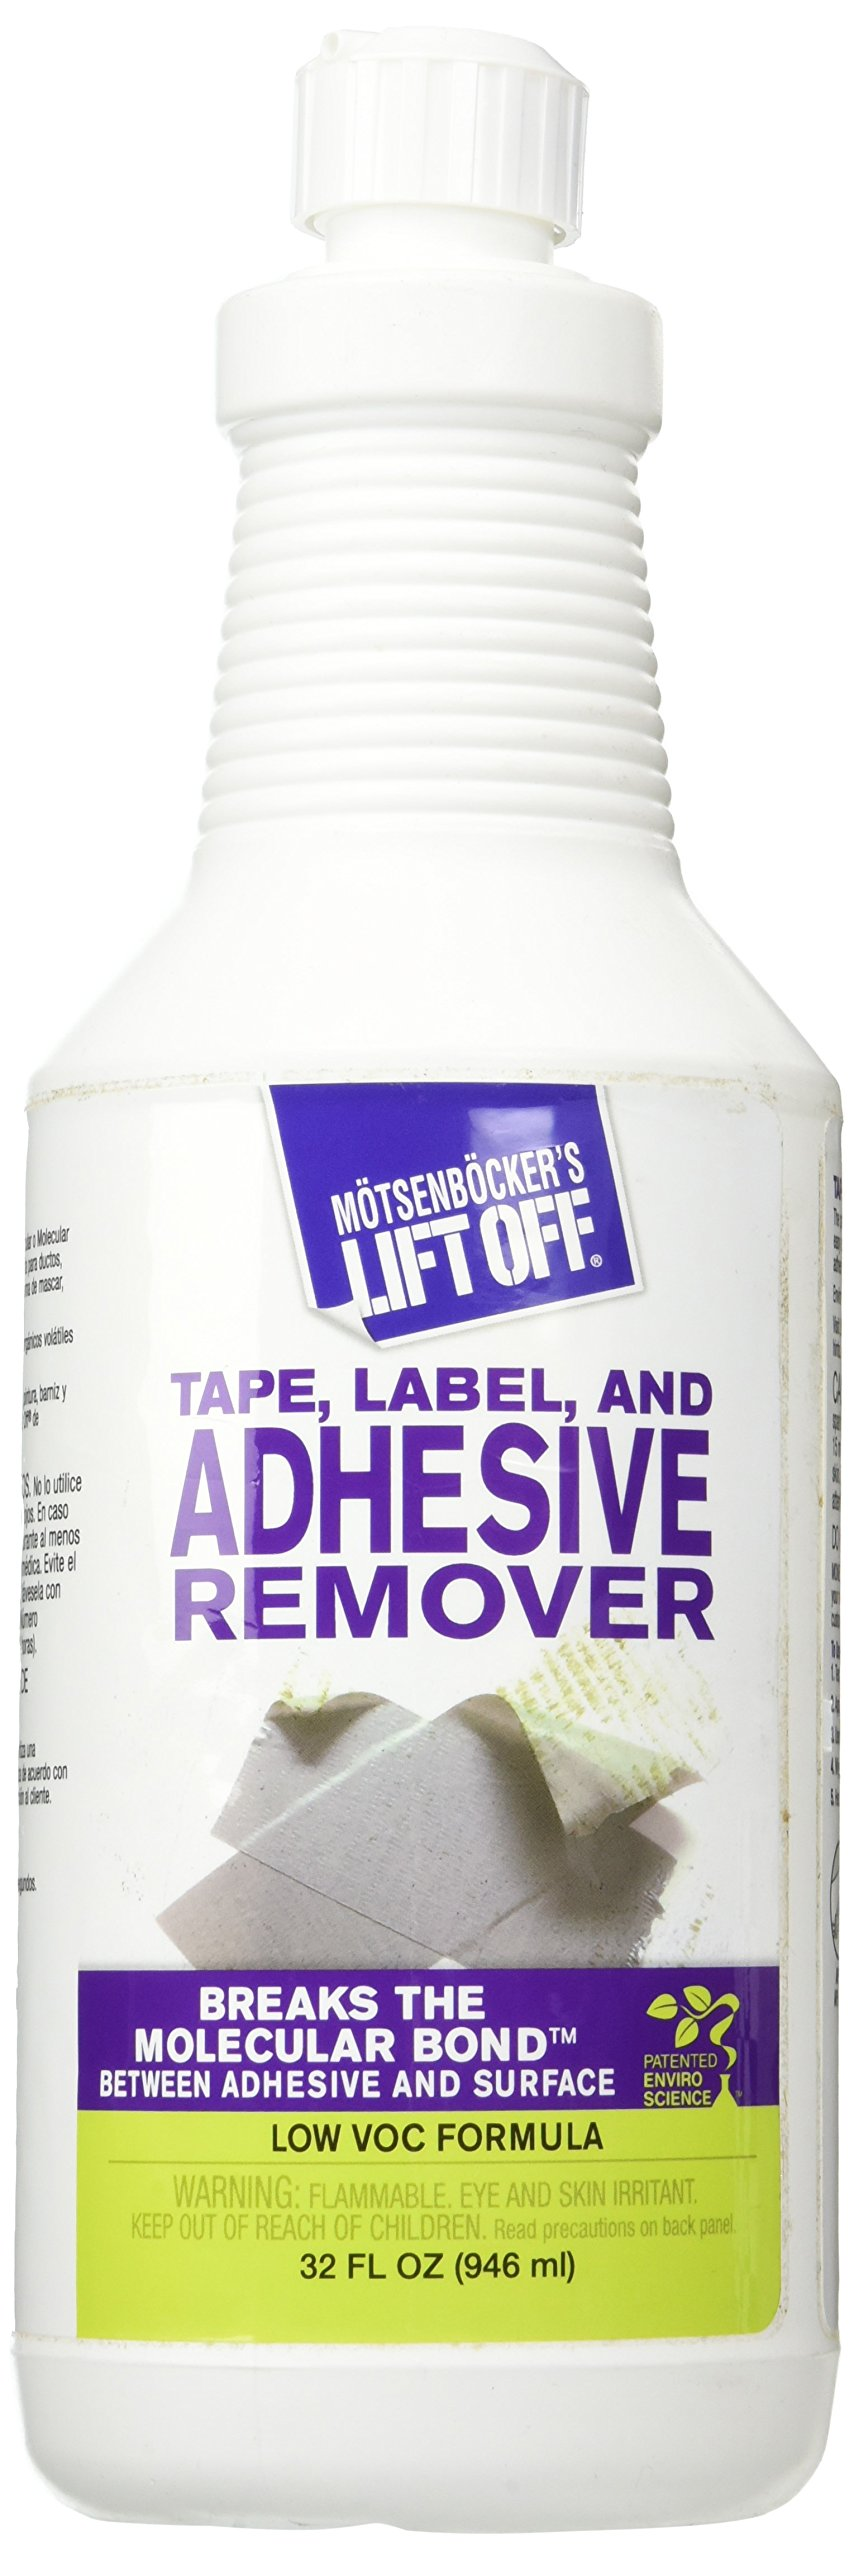 MOTSENBOCKER LIFT-OFF 40703 Tape, Label, and Adhesive Remover 32-Ounce Bottle-Pack of 1, Fluid